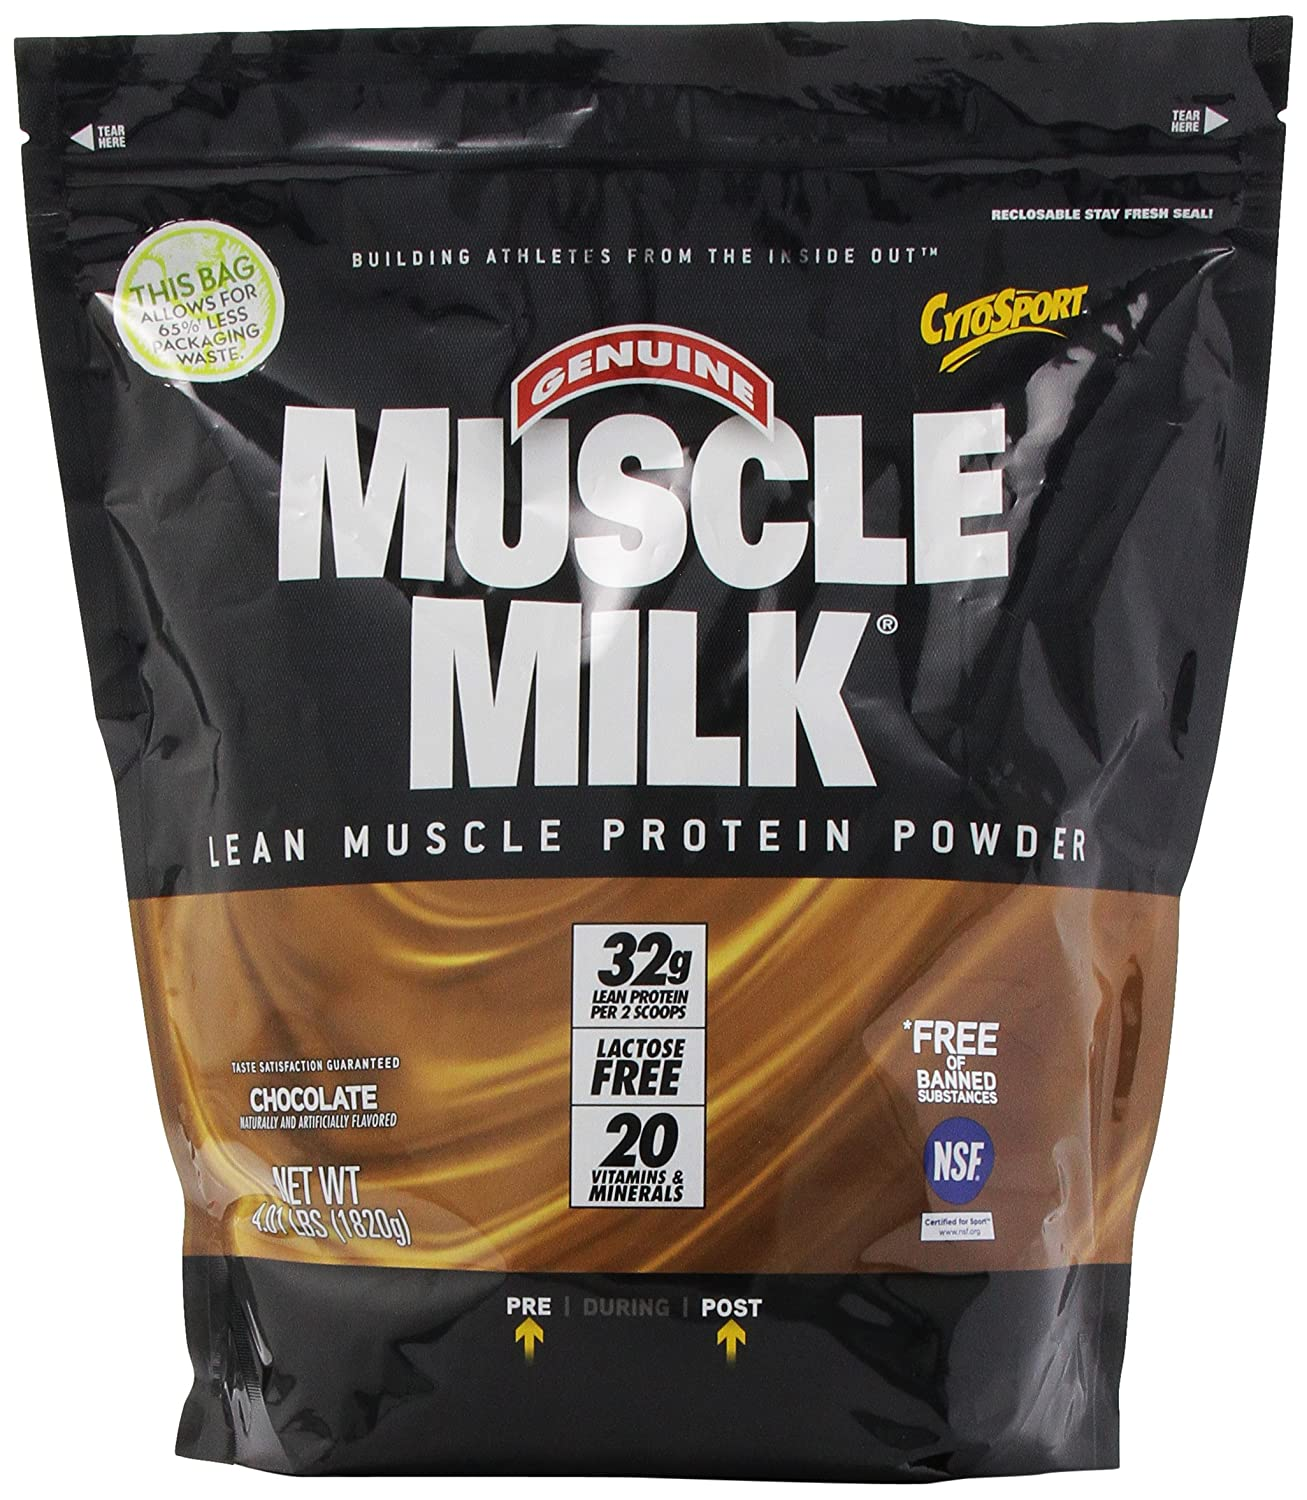 Get Protein Powder + Bars and Supplements from Costco - ShopandBox